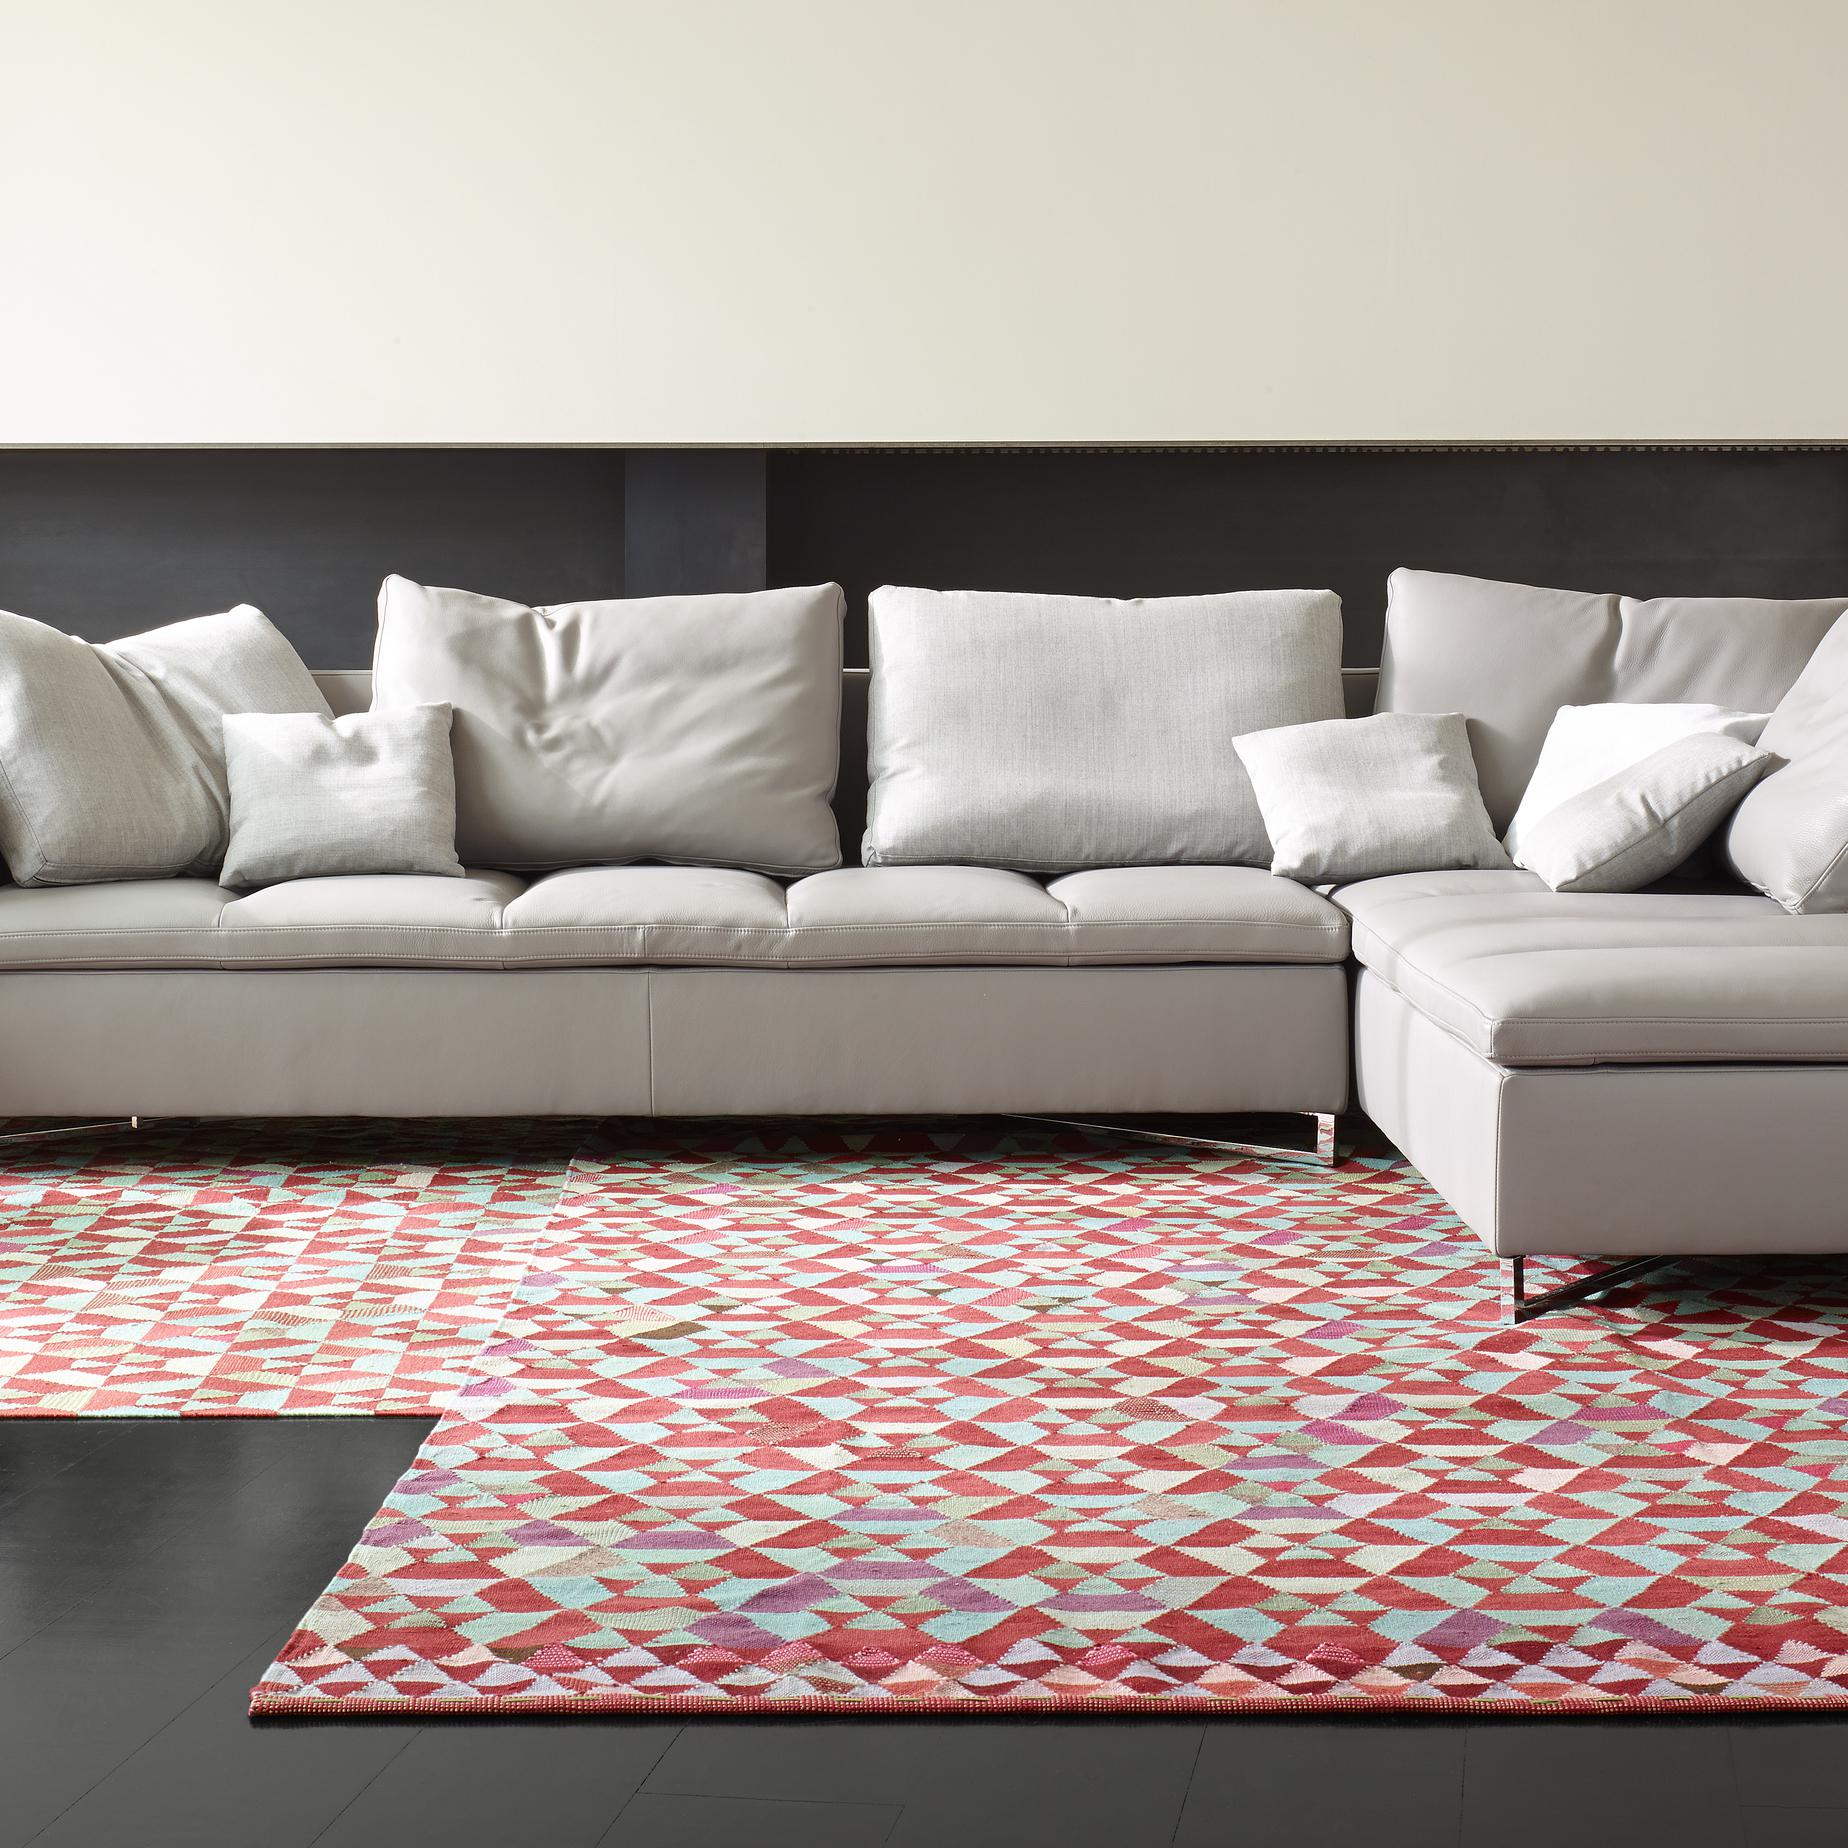 hex hex tapis designer bertjan pot ligne roset. Black Bedroom Furniture Sets. Home Design Ideas